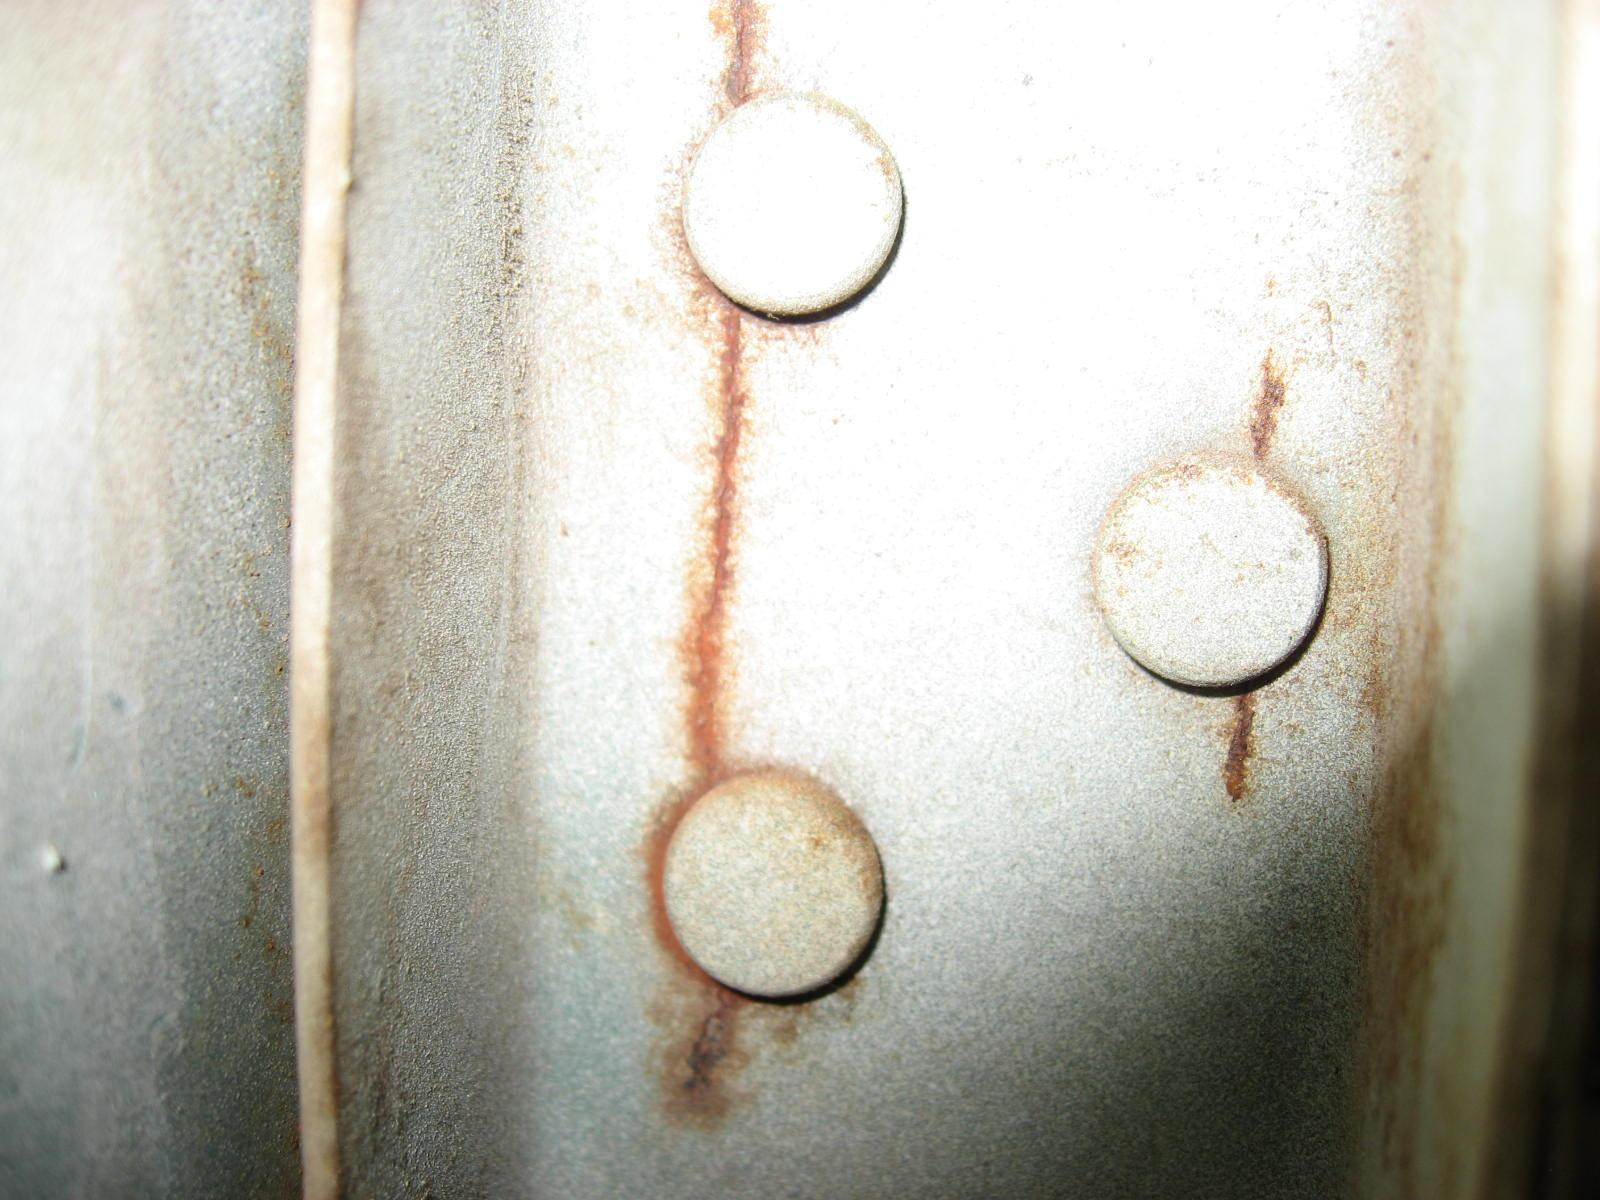 crack at lower hinge and patch weld